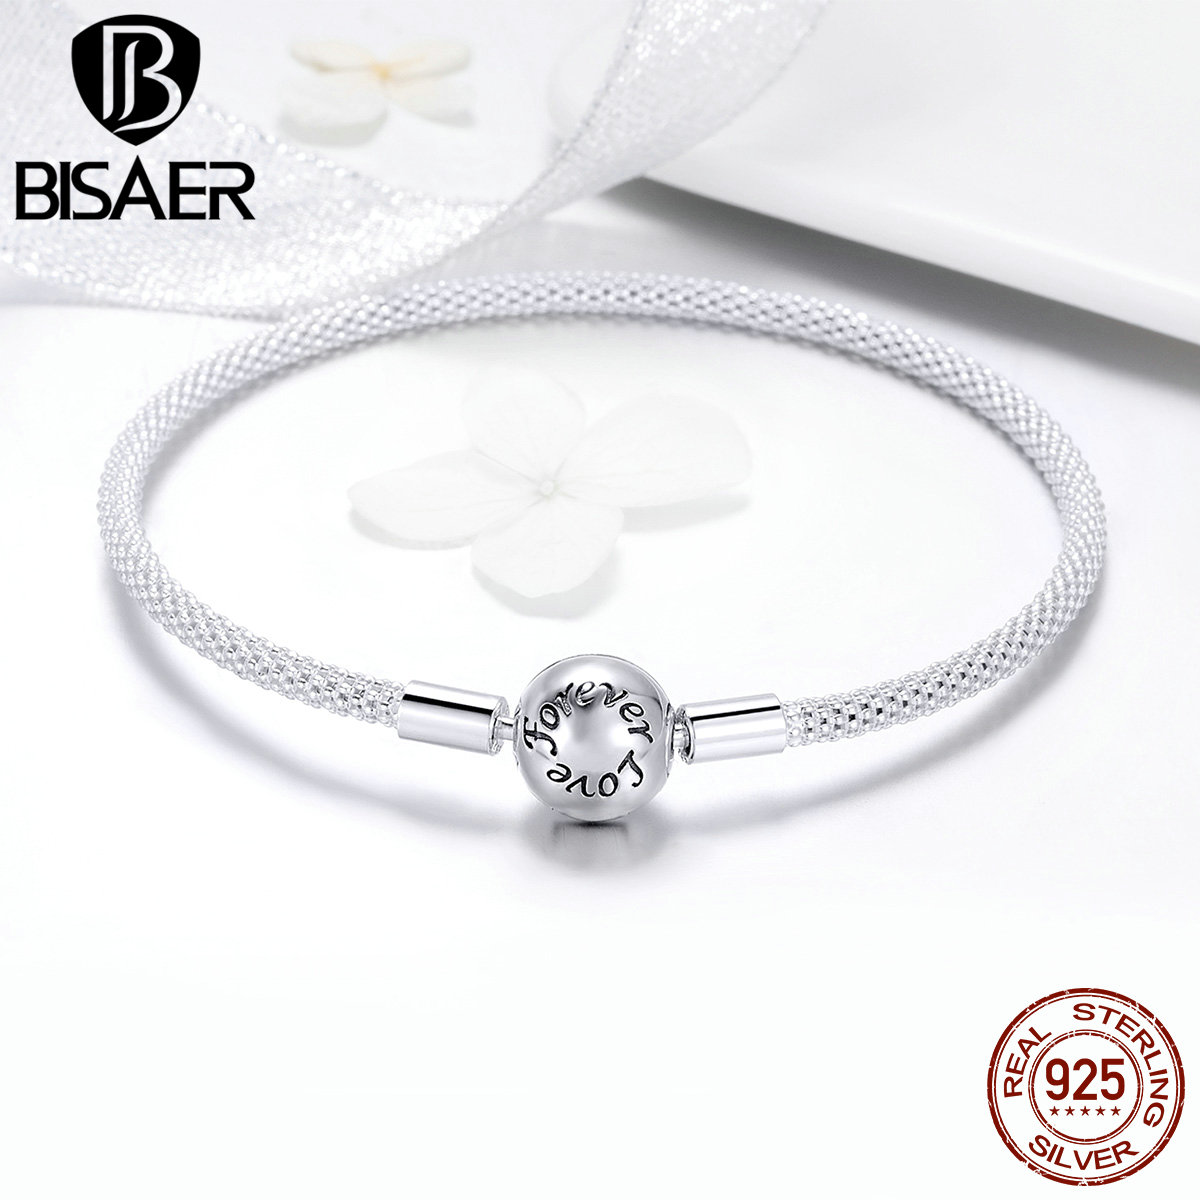 BISAER Silver Charm Bracelet for Women Jewelry Making 925 Sterling Silver Bracelet for Beads 925 Original Fine Jewelry GXB105 помада maybelline new york maybelline new york ma010lwnex80